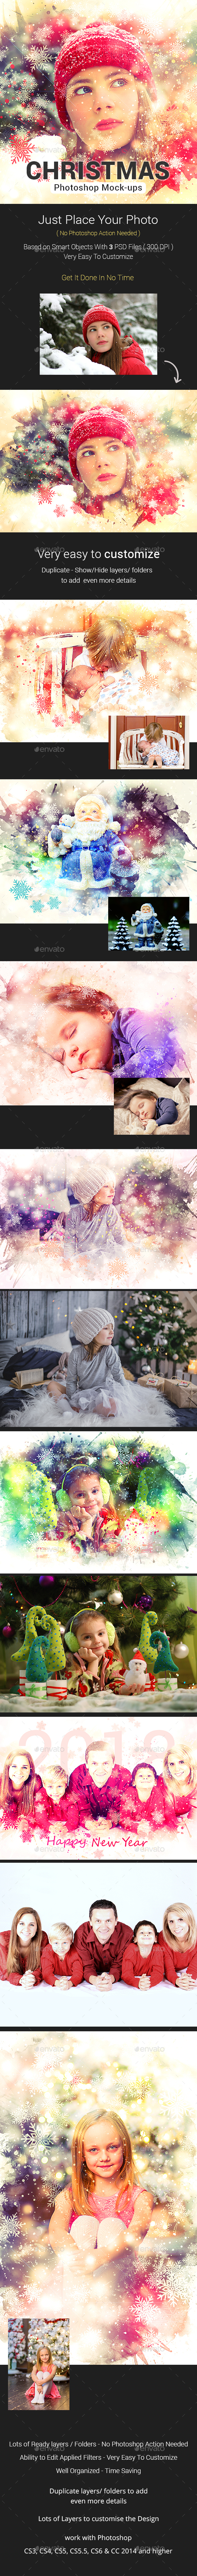 Christmas Photoshop Template Mock-Ups - Photo Templates Graphics